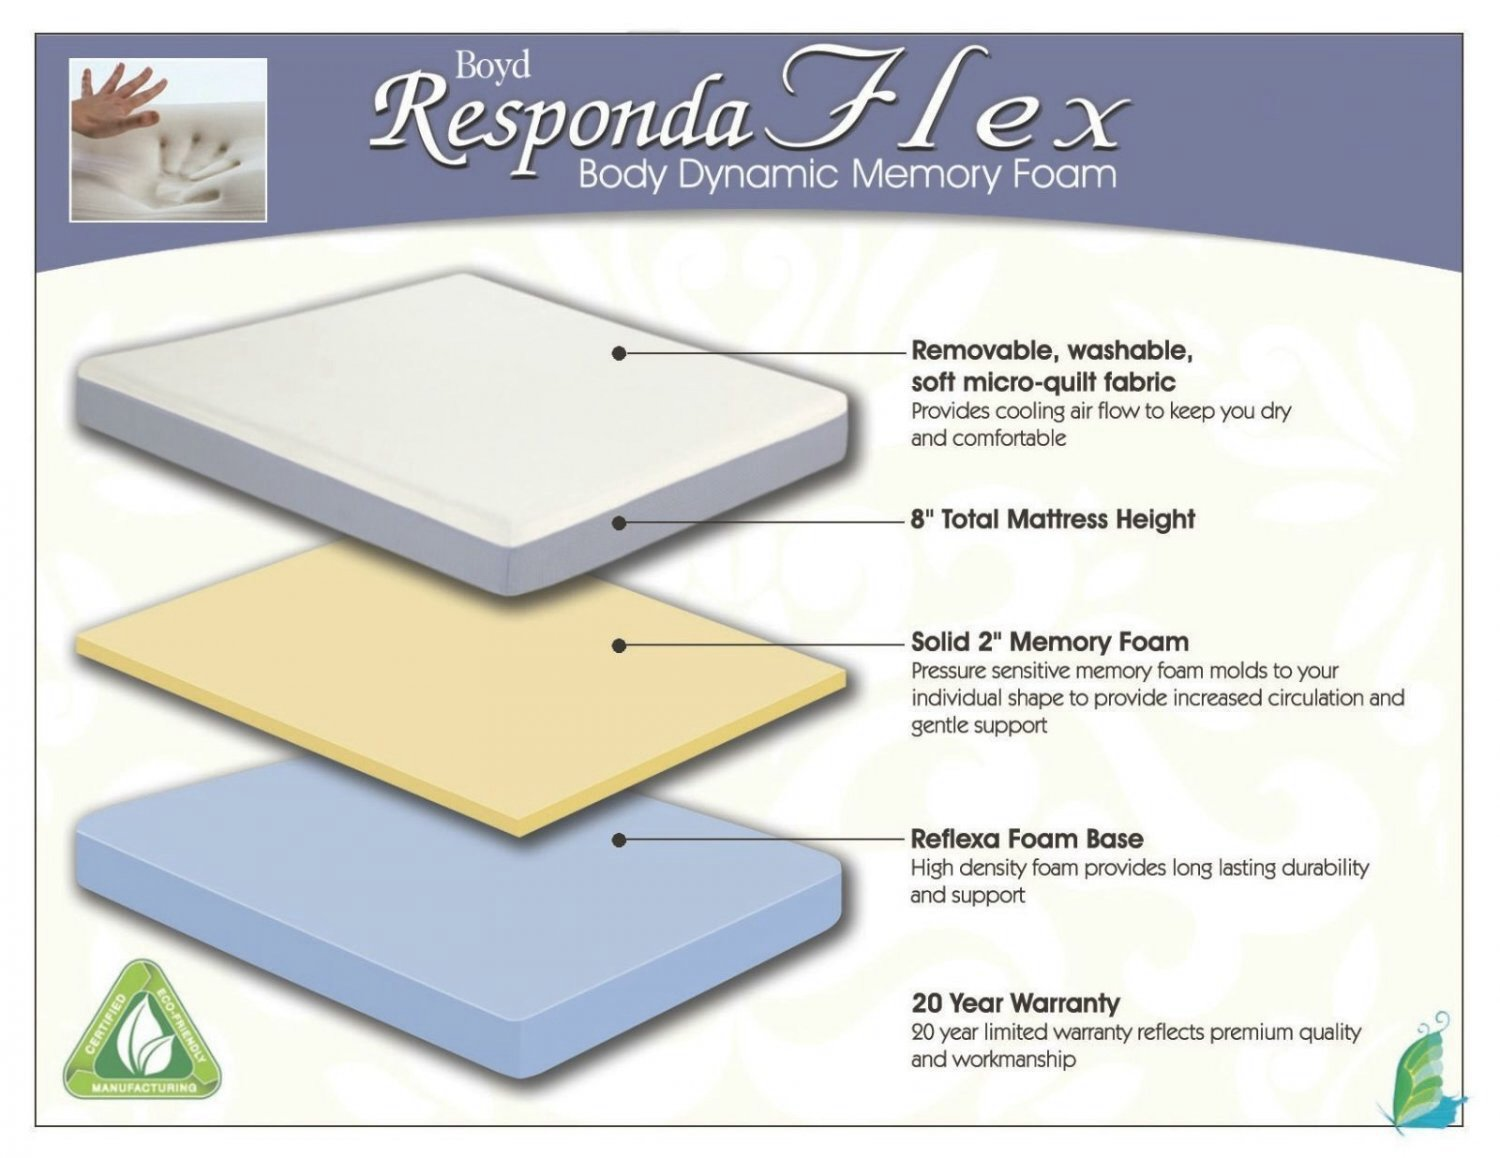 NEW Twin 8'' Medium Firm Memory Foam Mattress! Responda Flex 5082